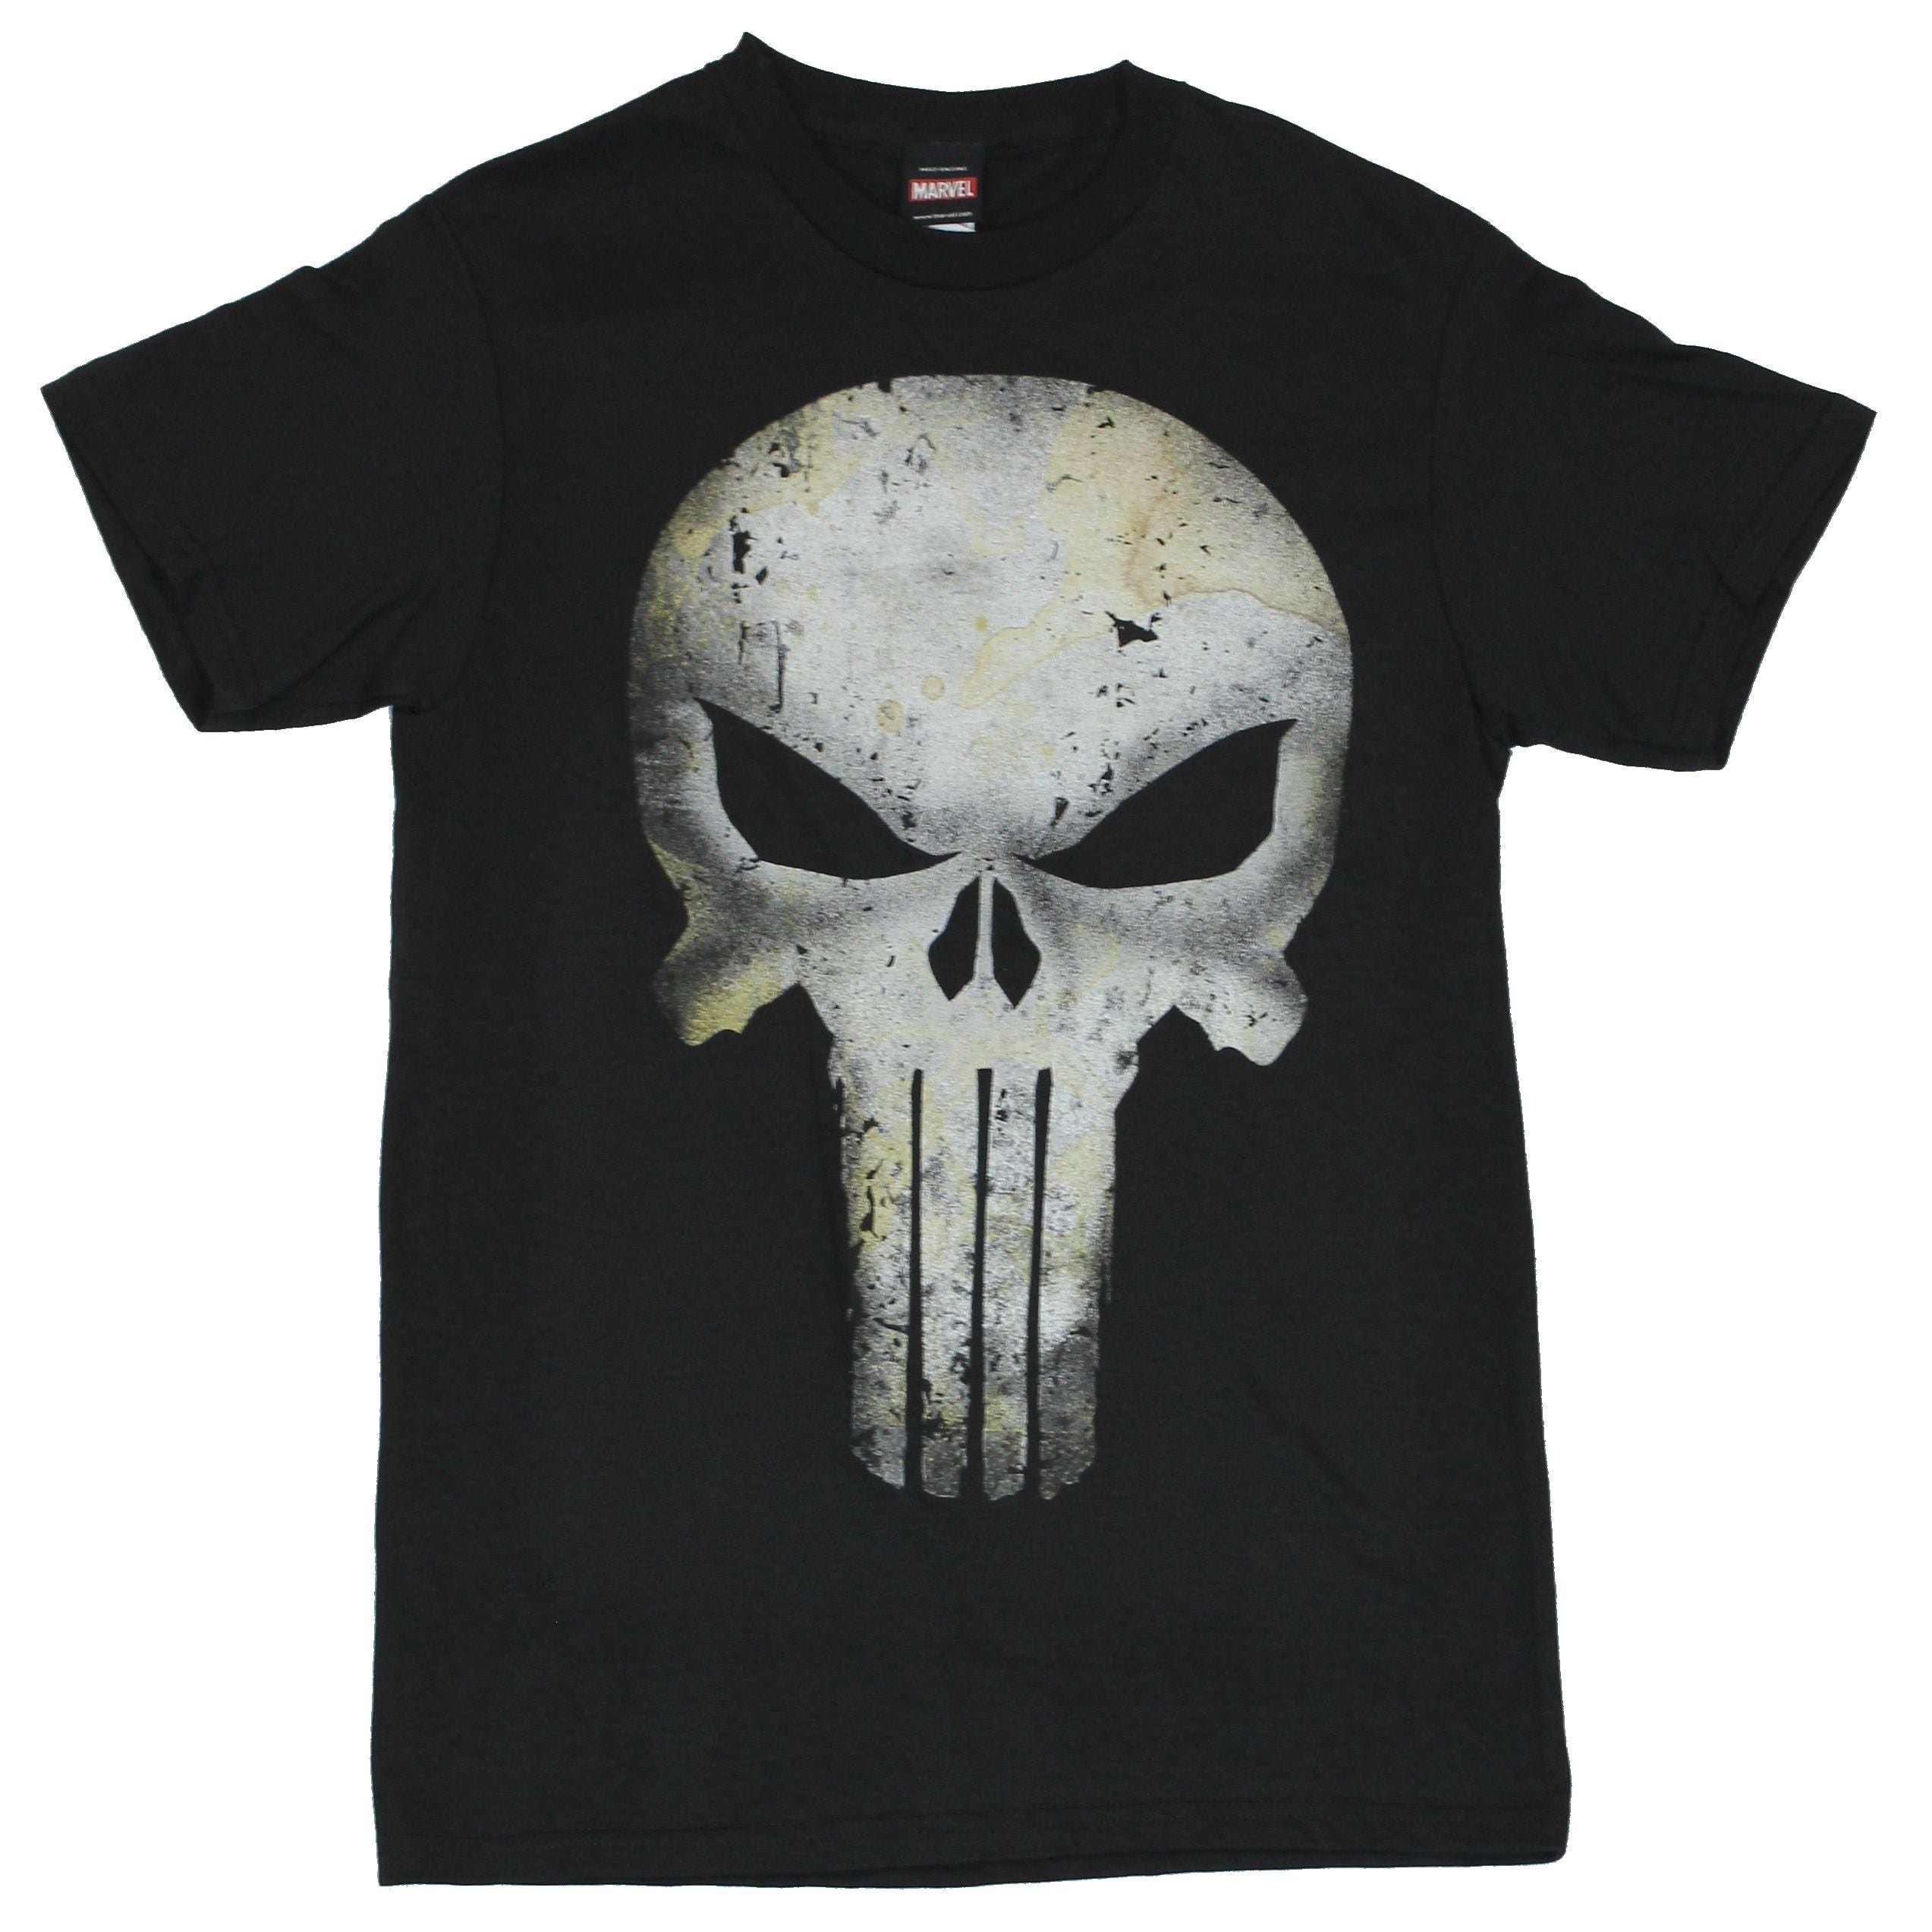 The Punisher (Marvel Comics) Mens T-Shirt - Water Stained Elaborate Skull Image